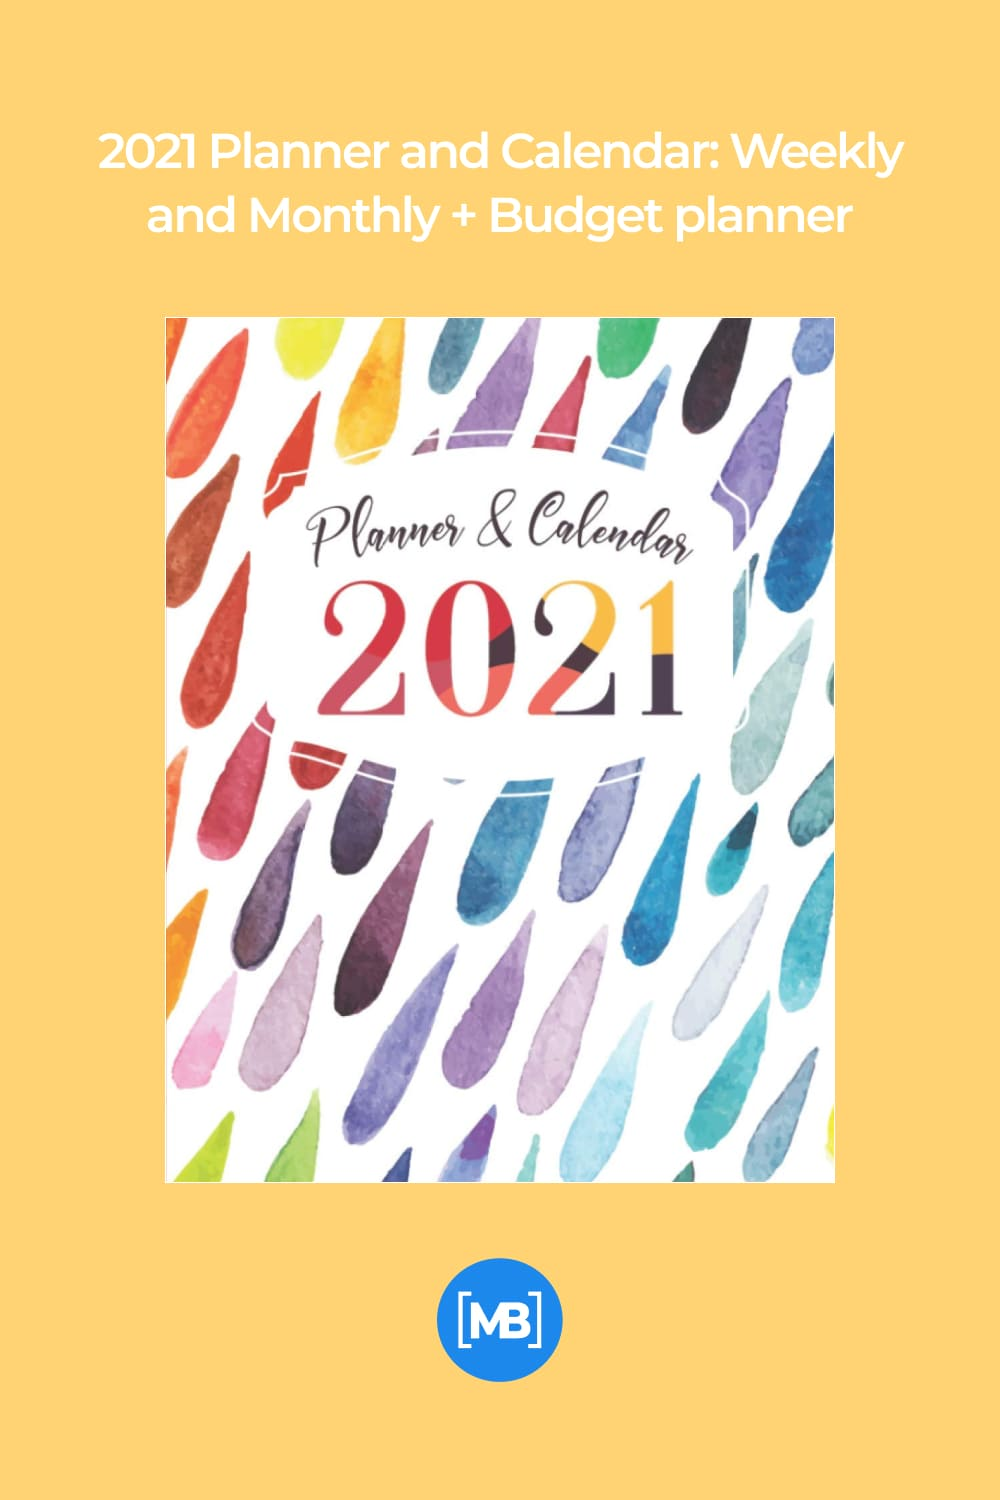 Here it is, a multi themed 2021 planner covering it all.